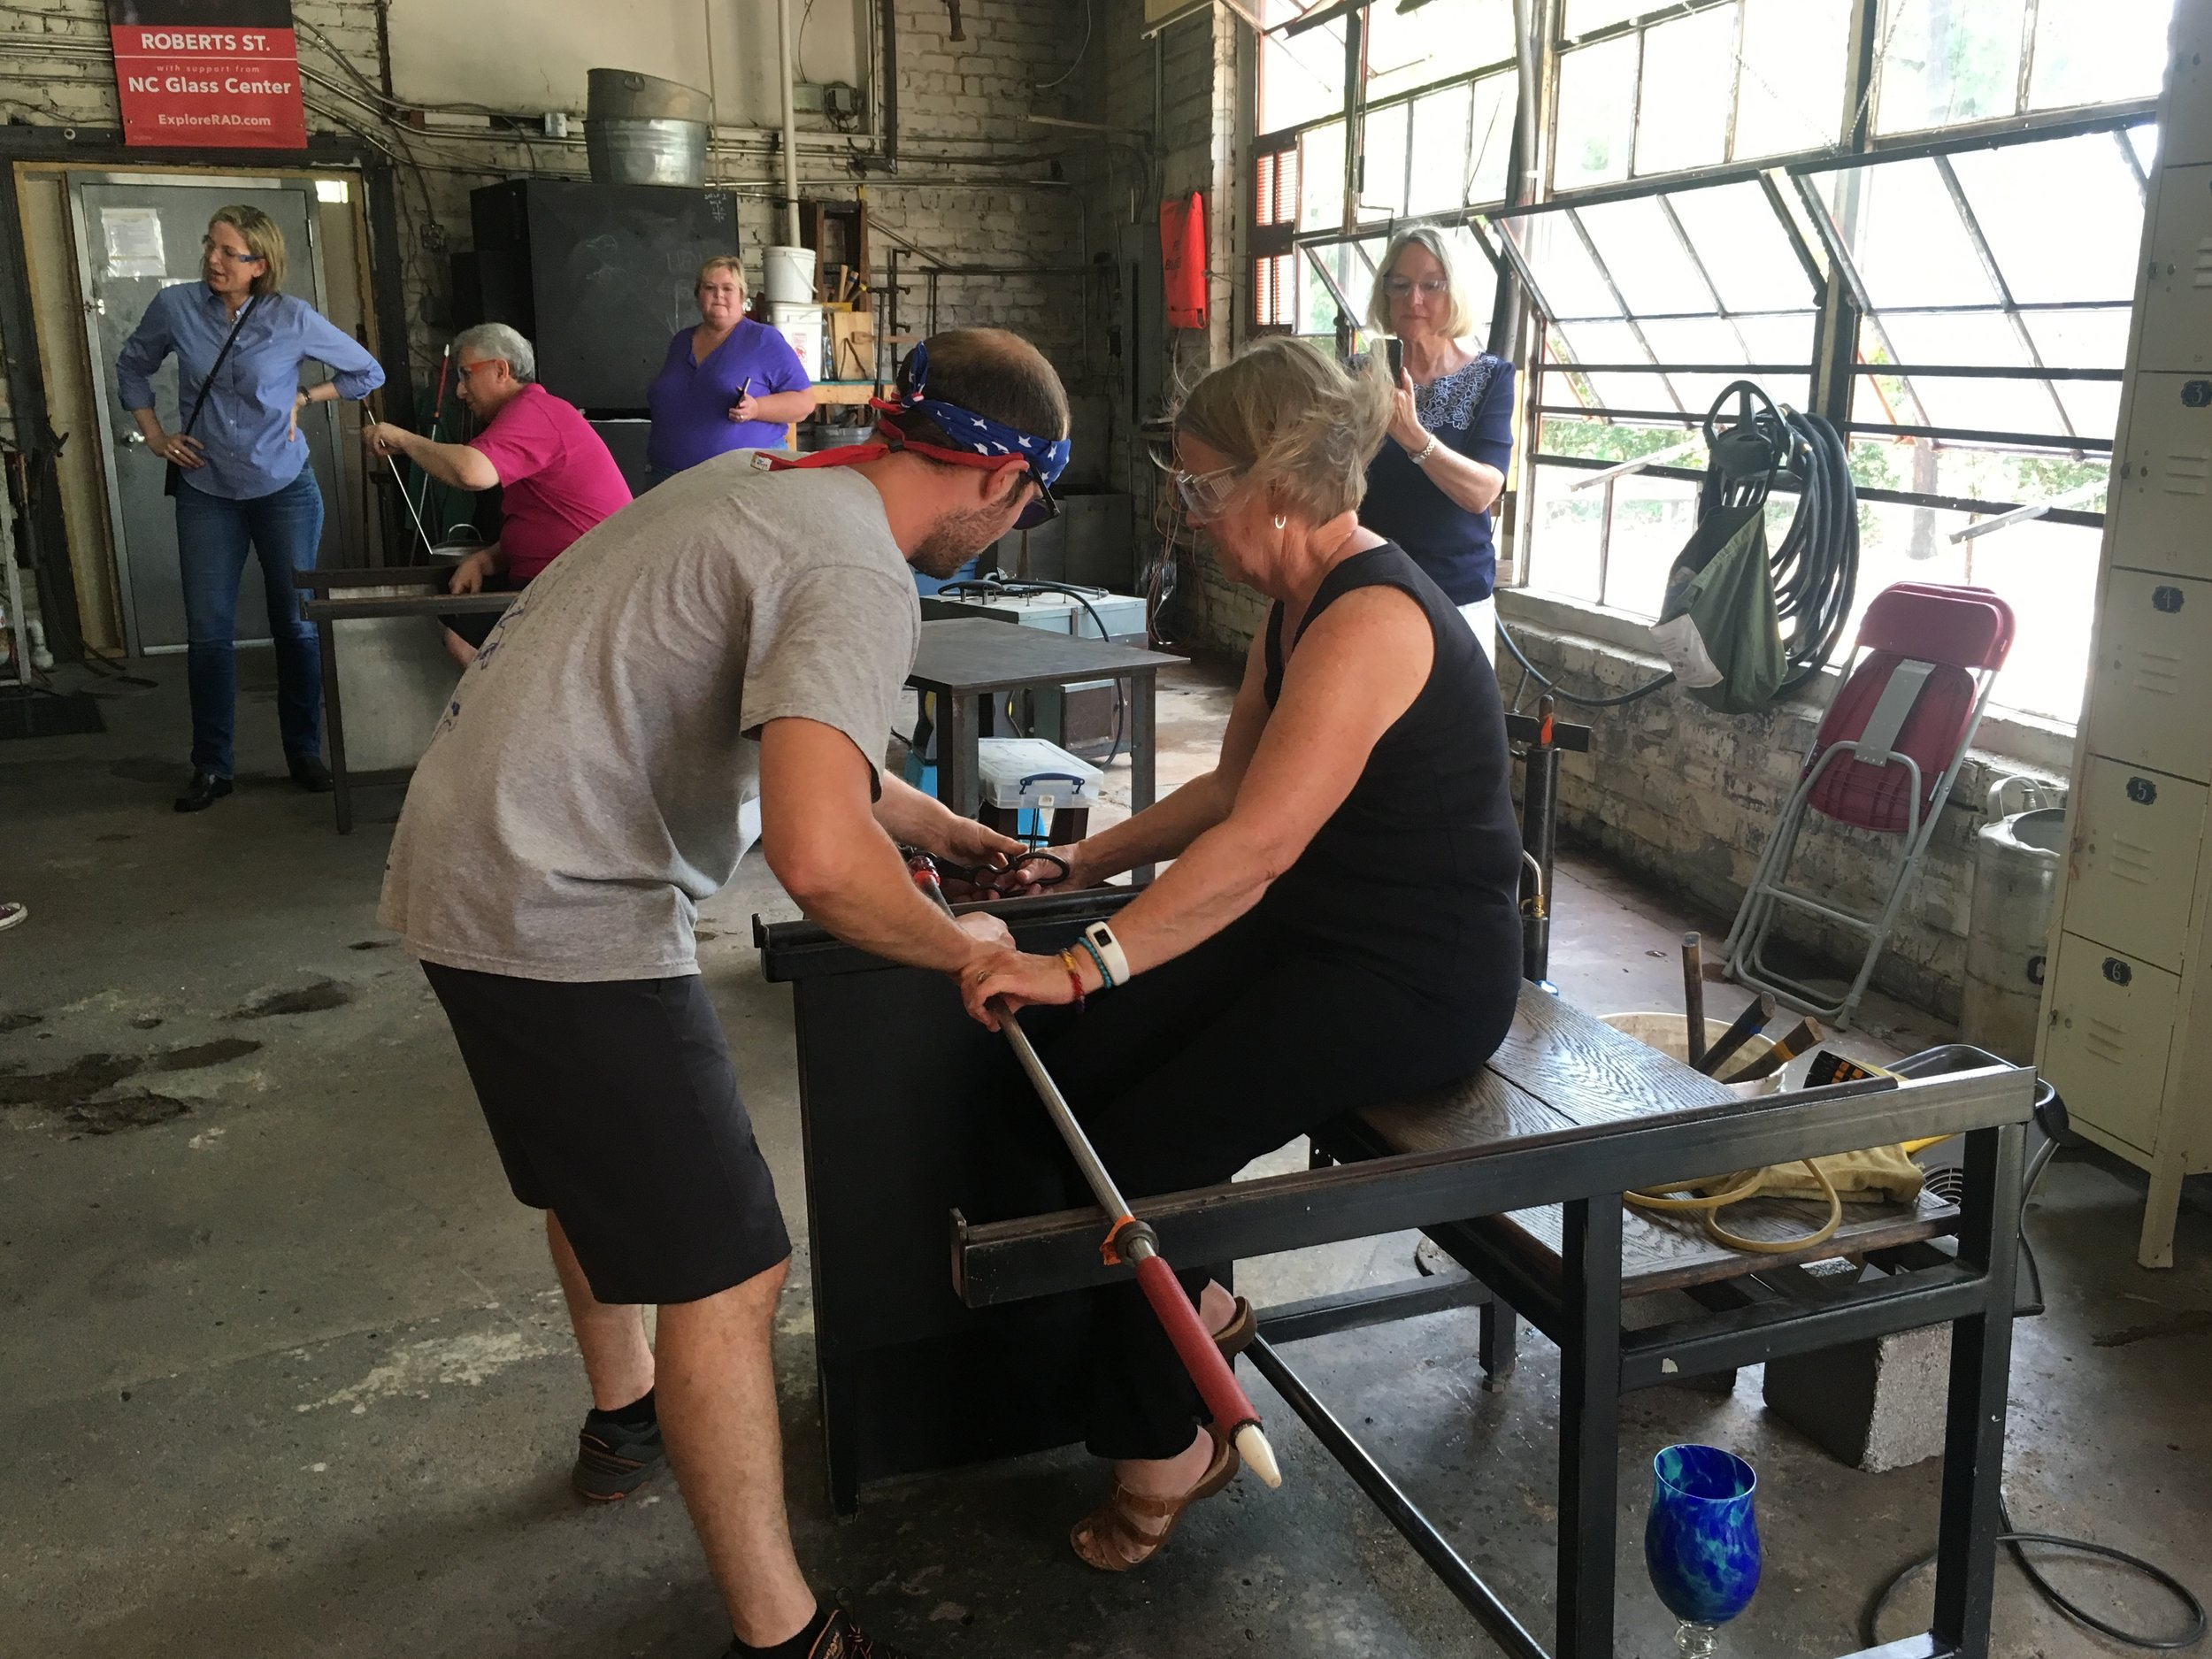 Getting a glass blowing lesson at the North Carolina Glass Center